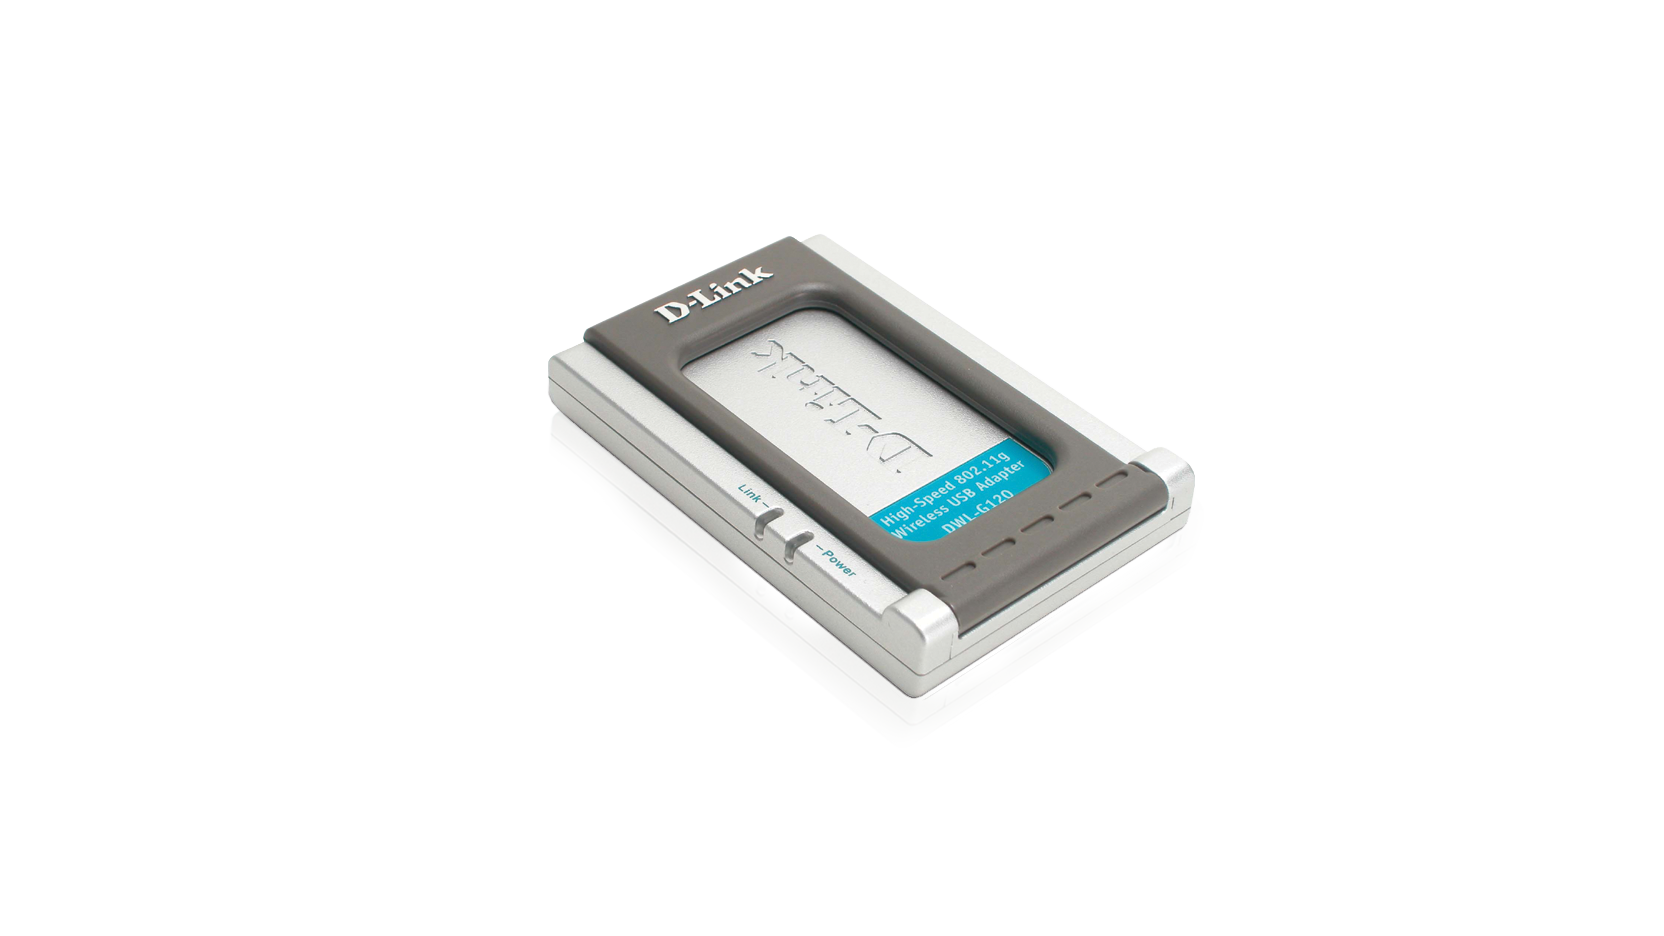 D-LINK DWL G120 DRIVERS FOR MAC DOWNLOAD